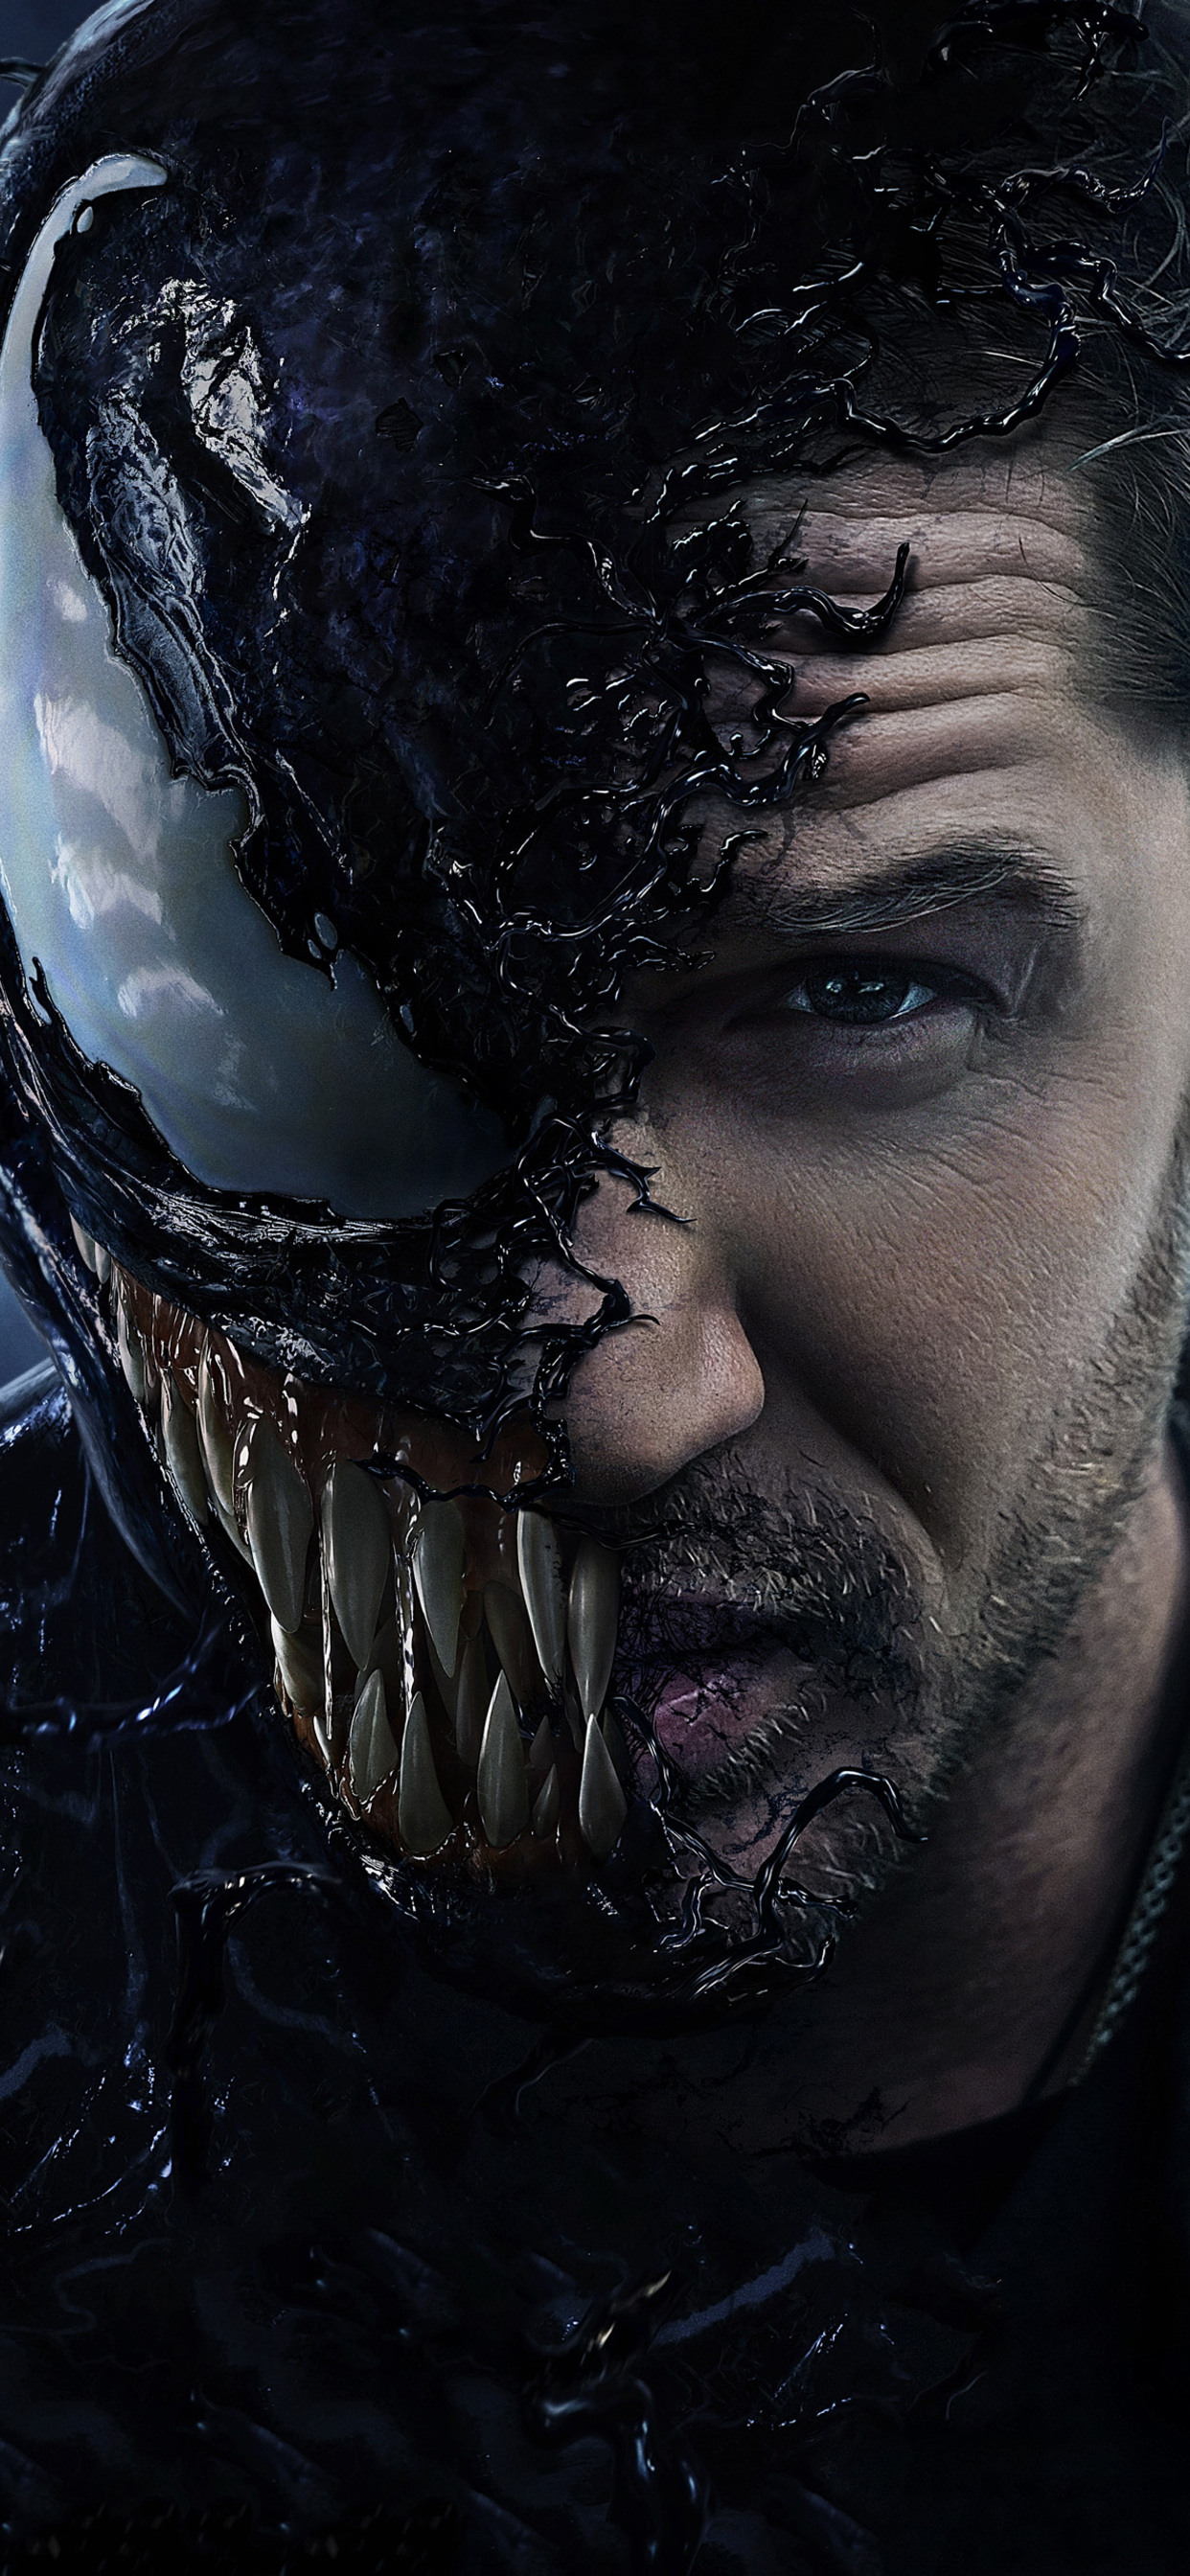 1242x2688 Venom Movie 5k Iphone Xs Max Hd 4k Wallpapers Images